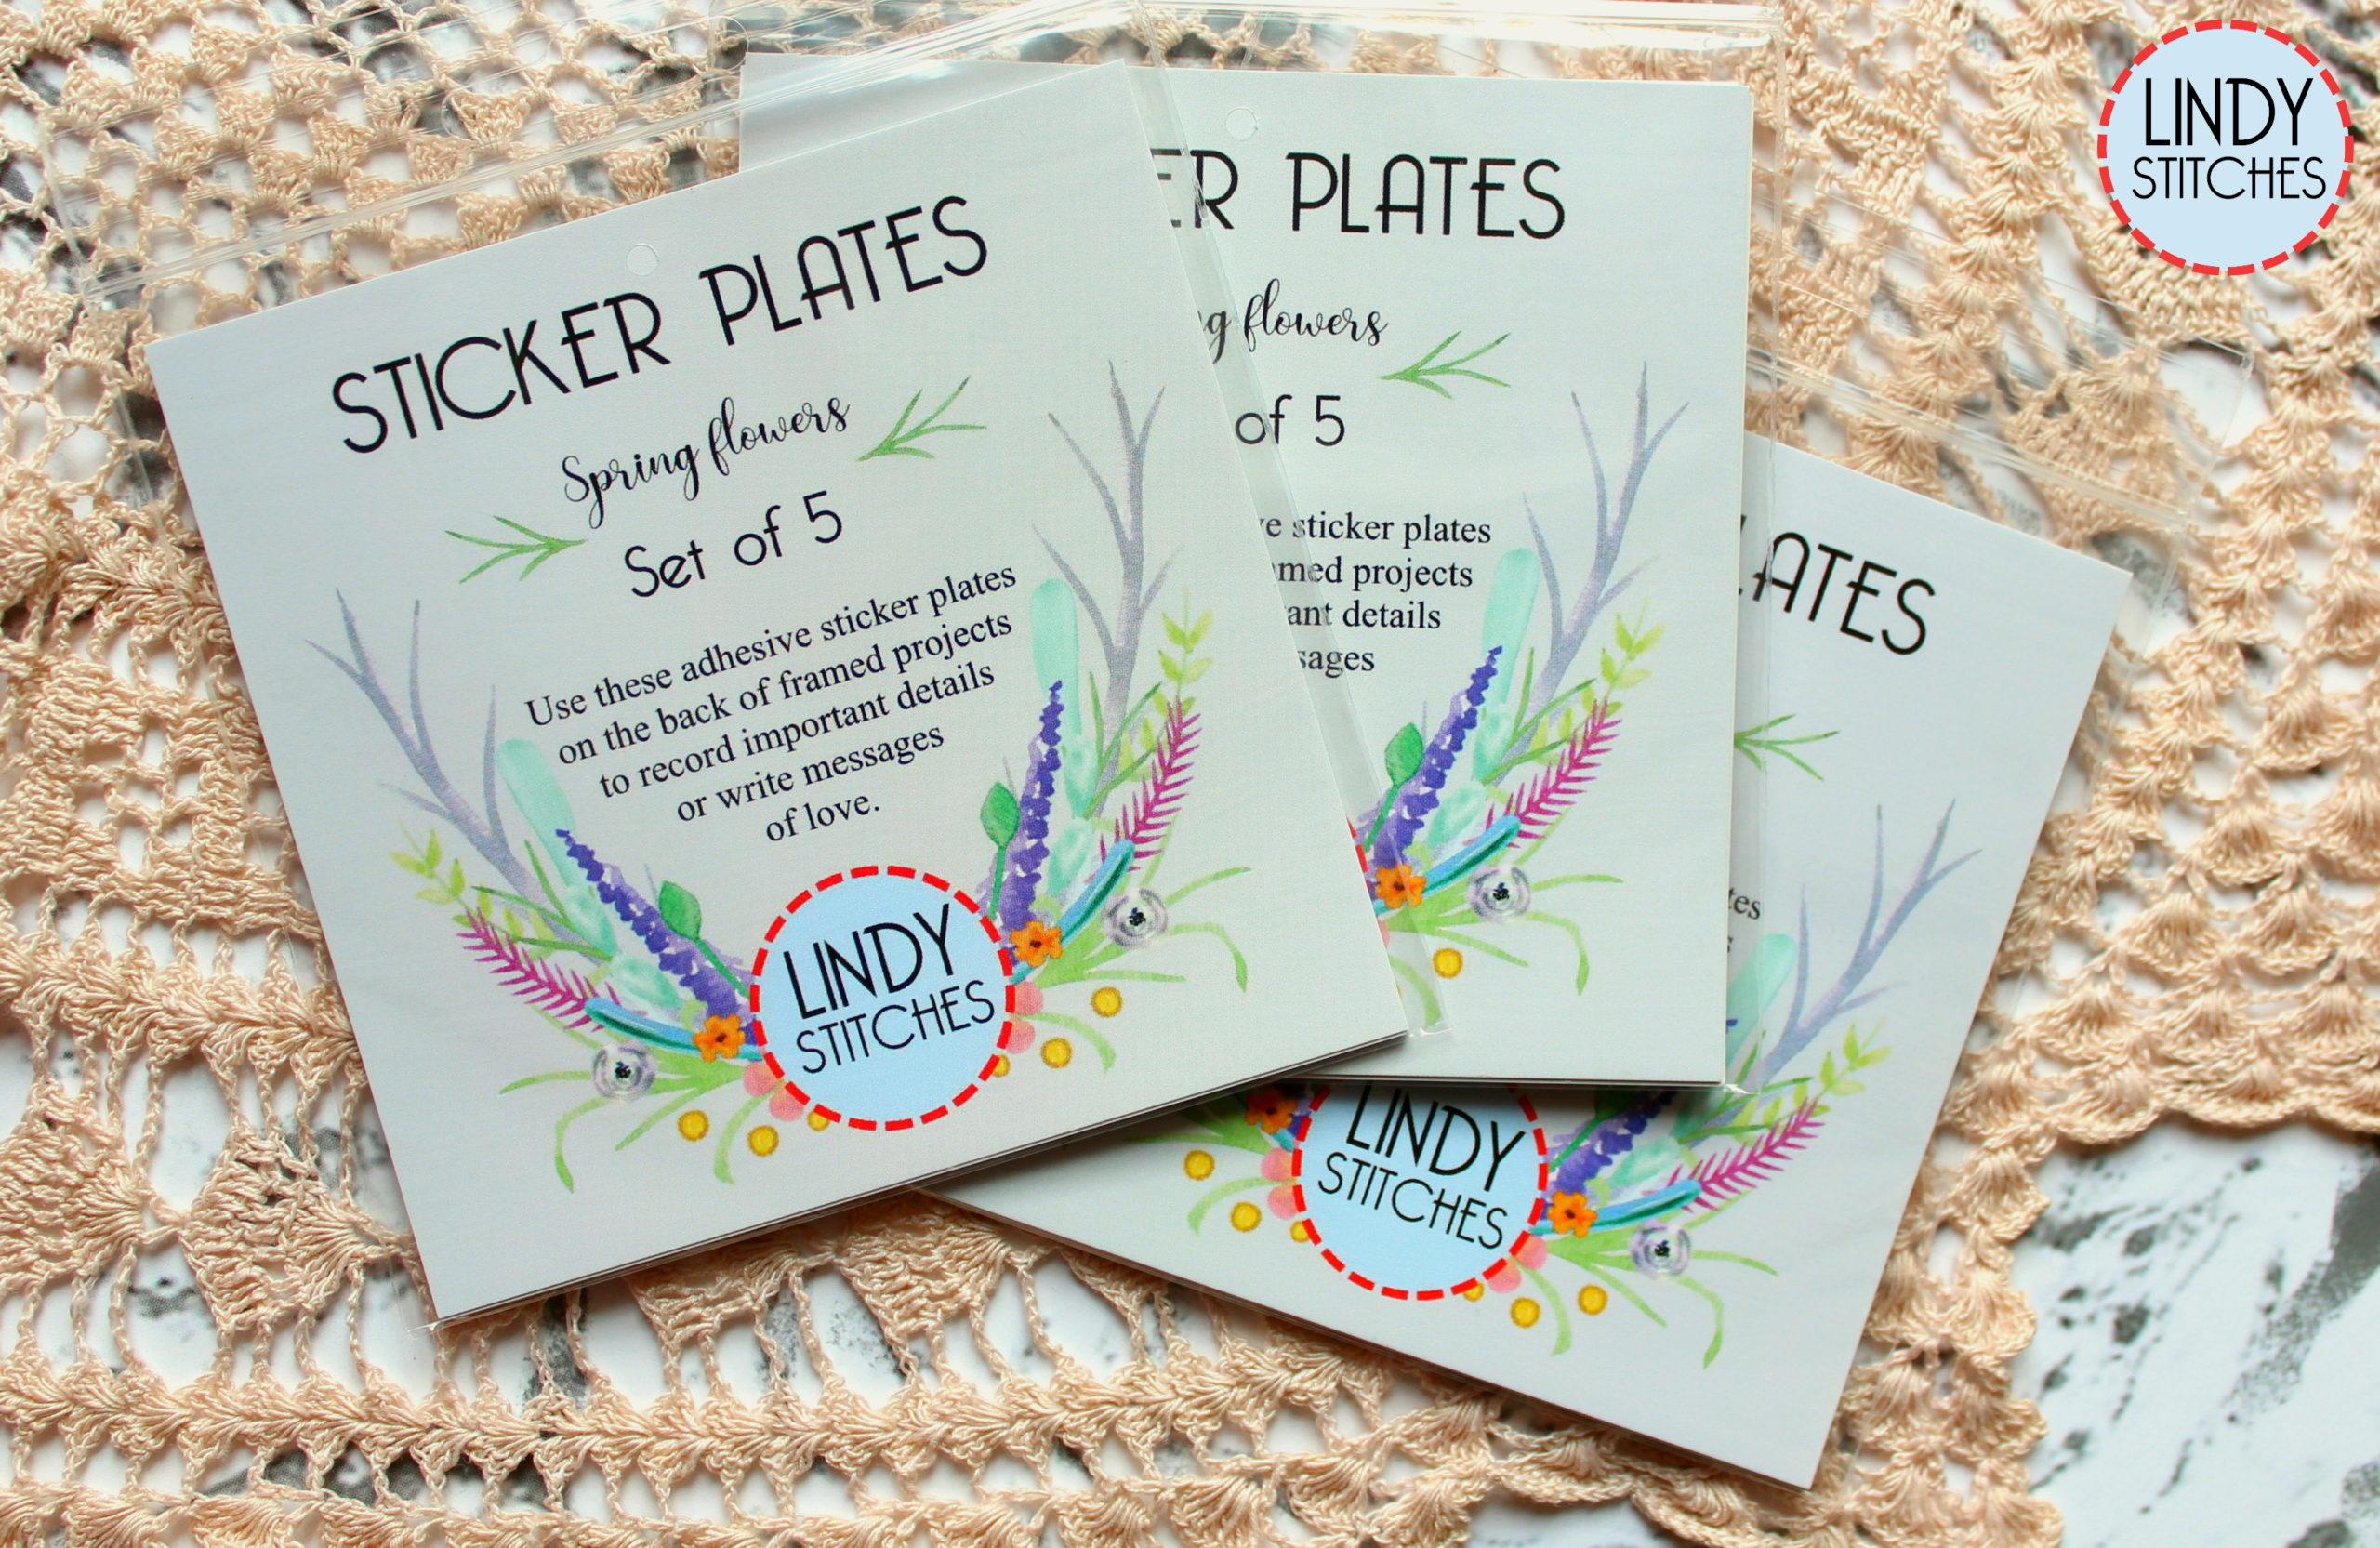 Spring Flowers Sticker Plates - Lindy Stitches